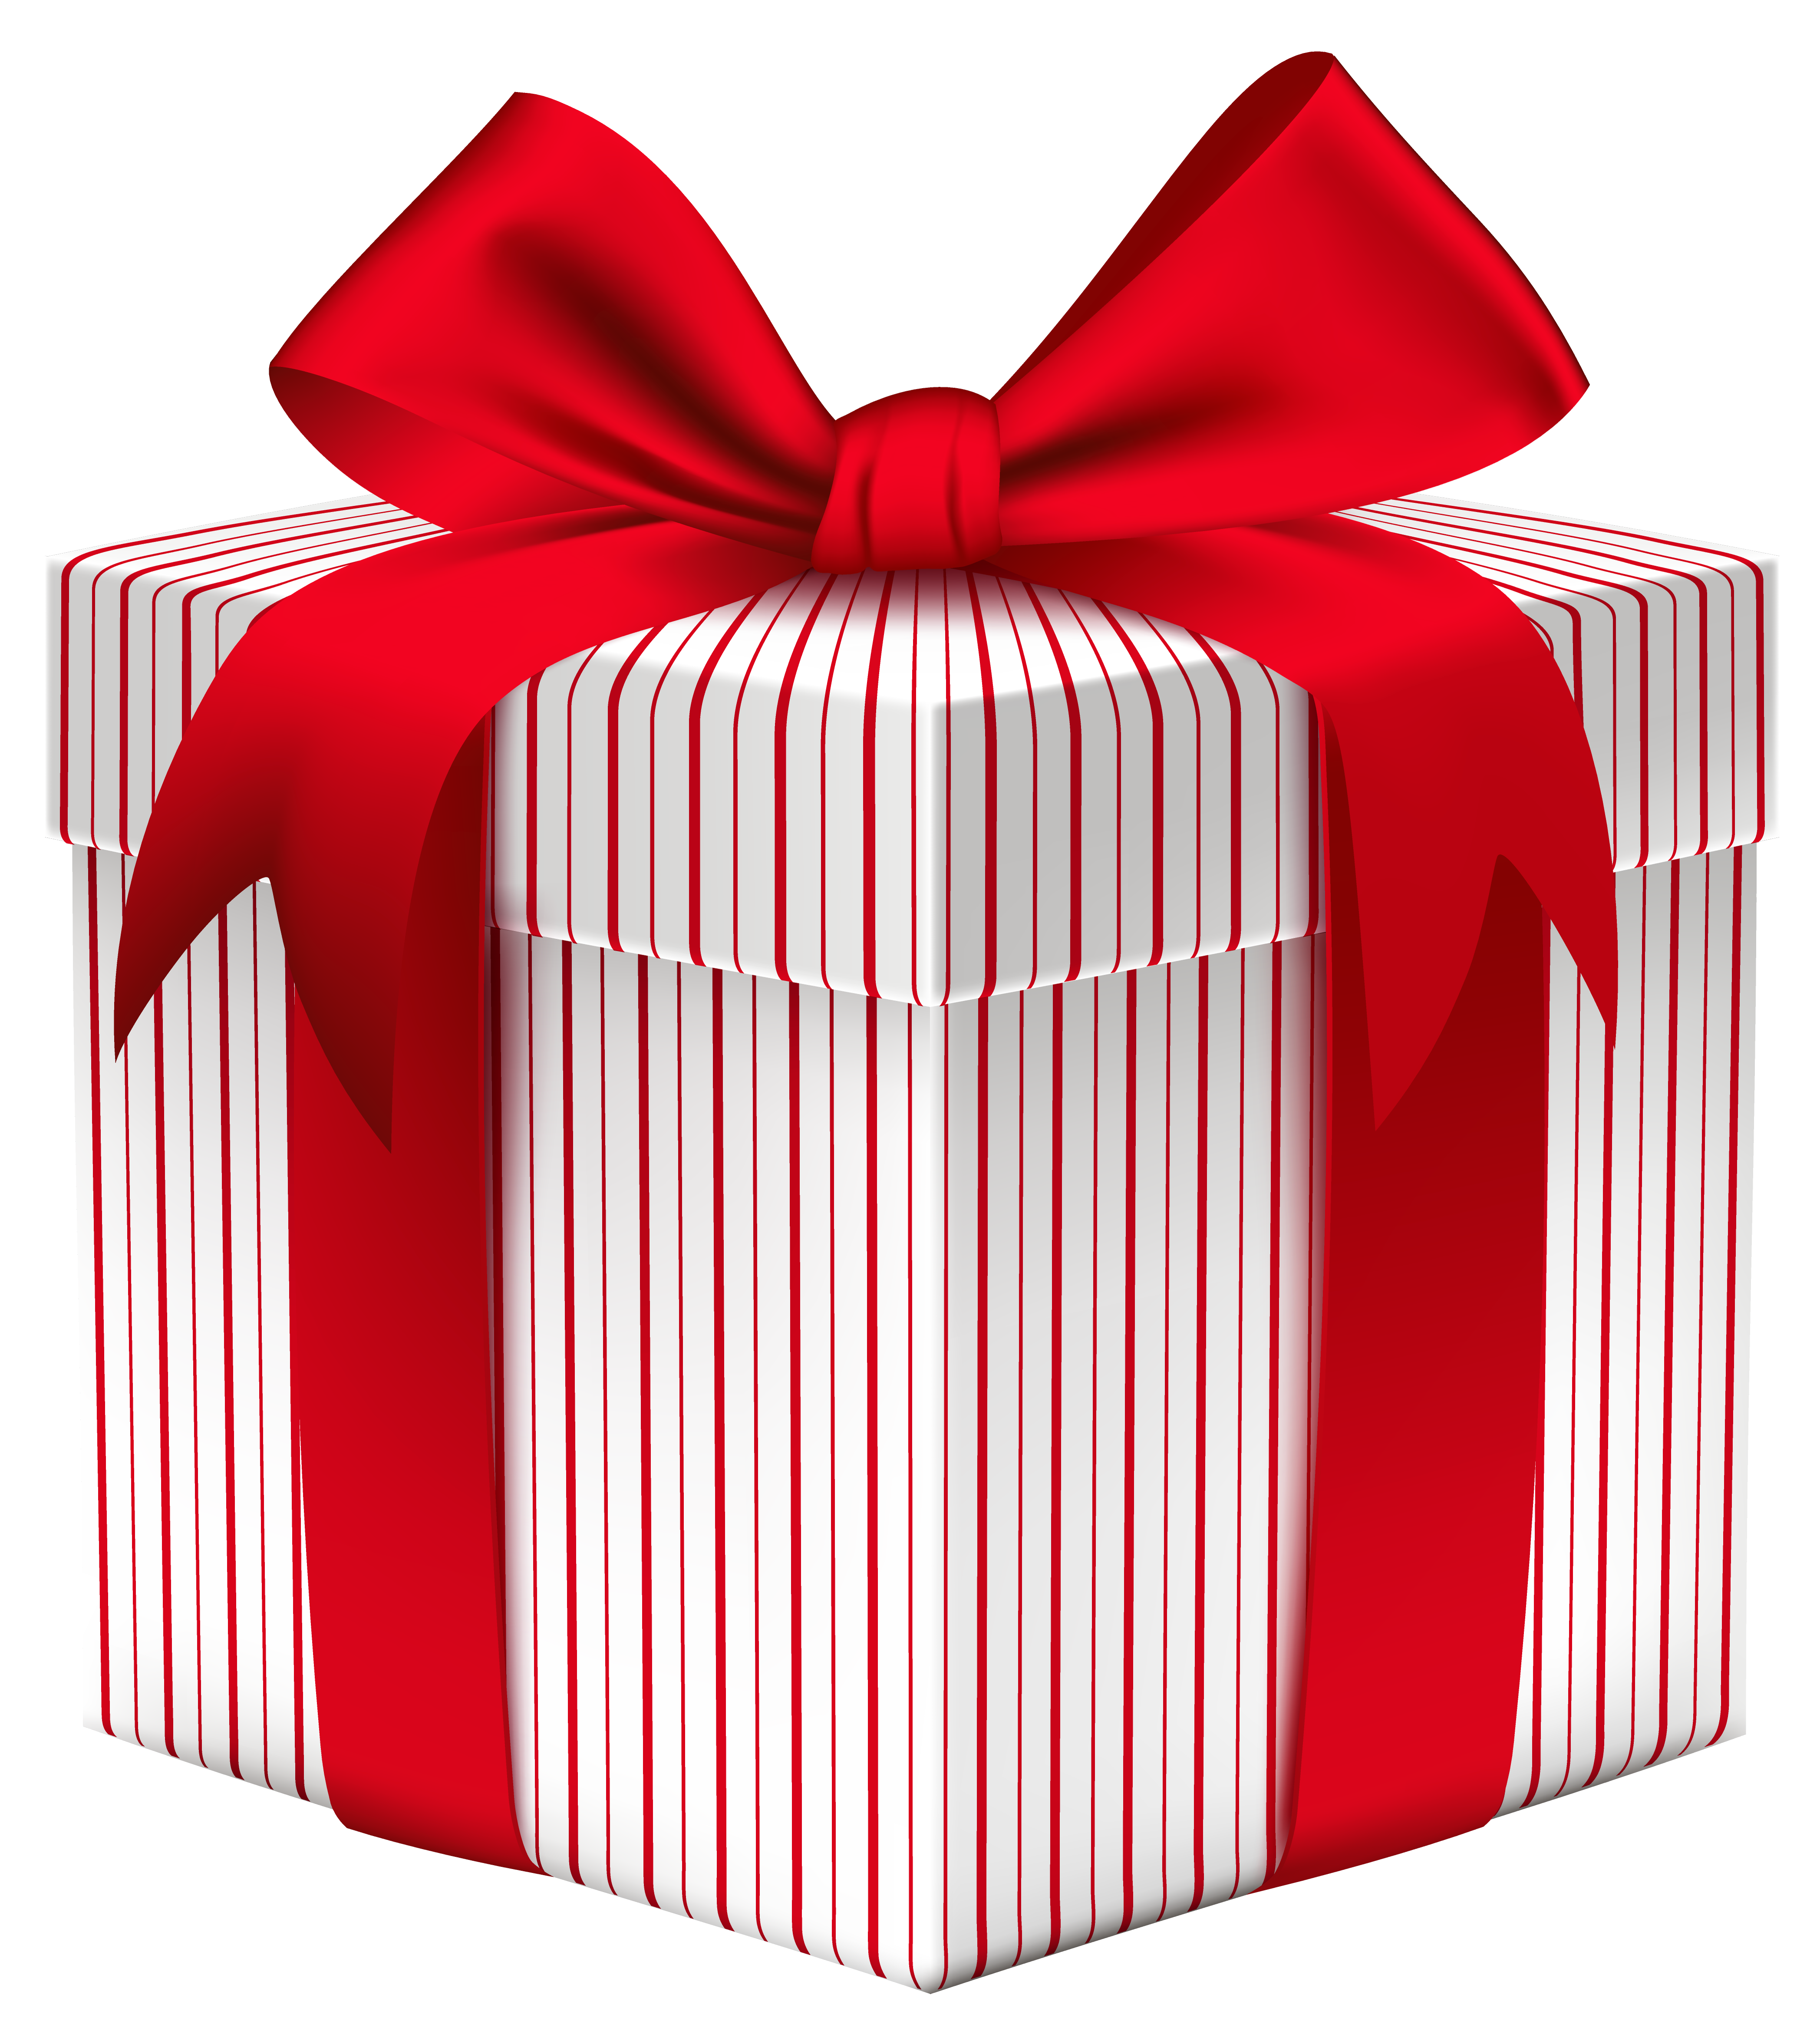 Christmas Gifts Transparent Clip Art Image Christmas Gift Clip Art Clip Art Art Gift